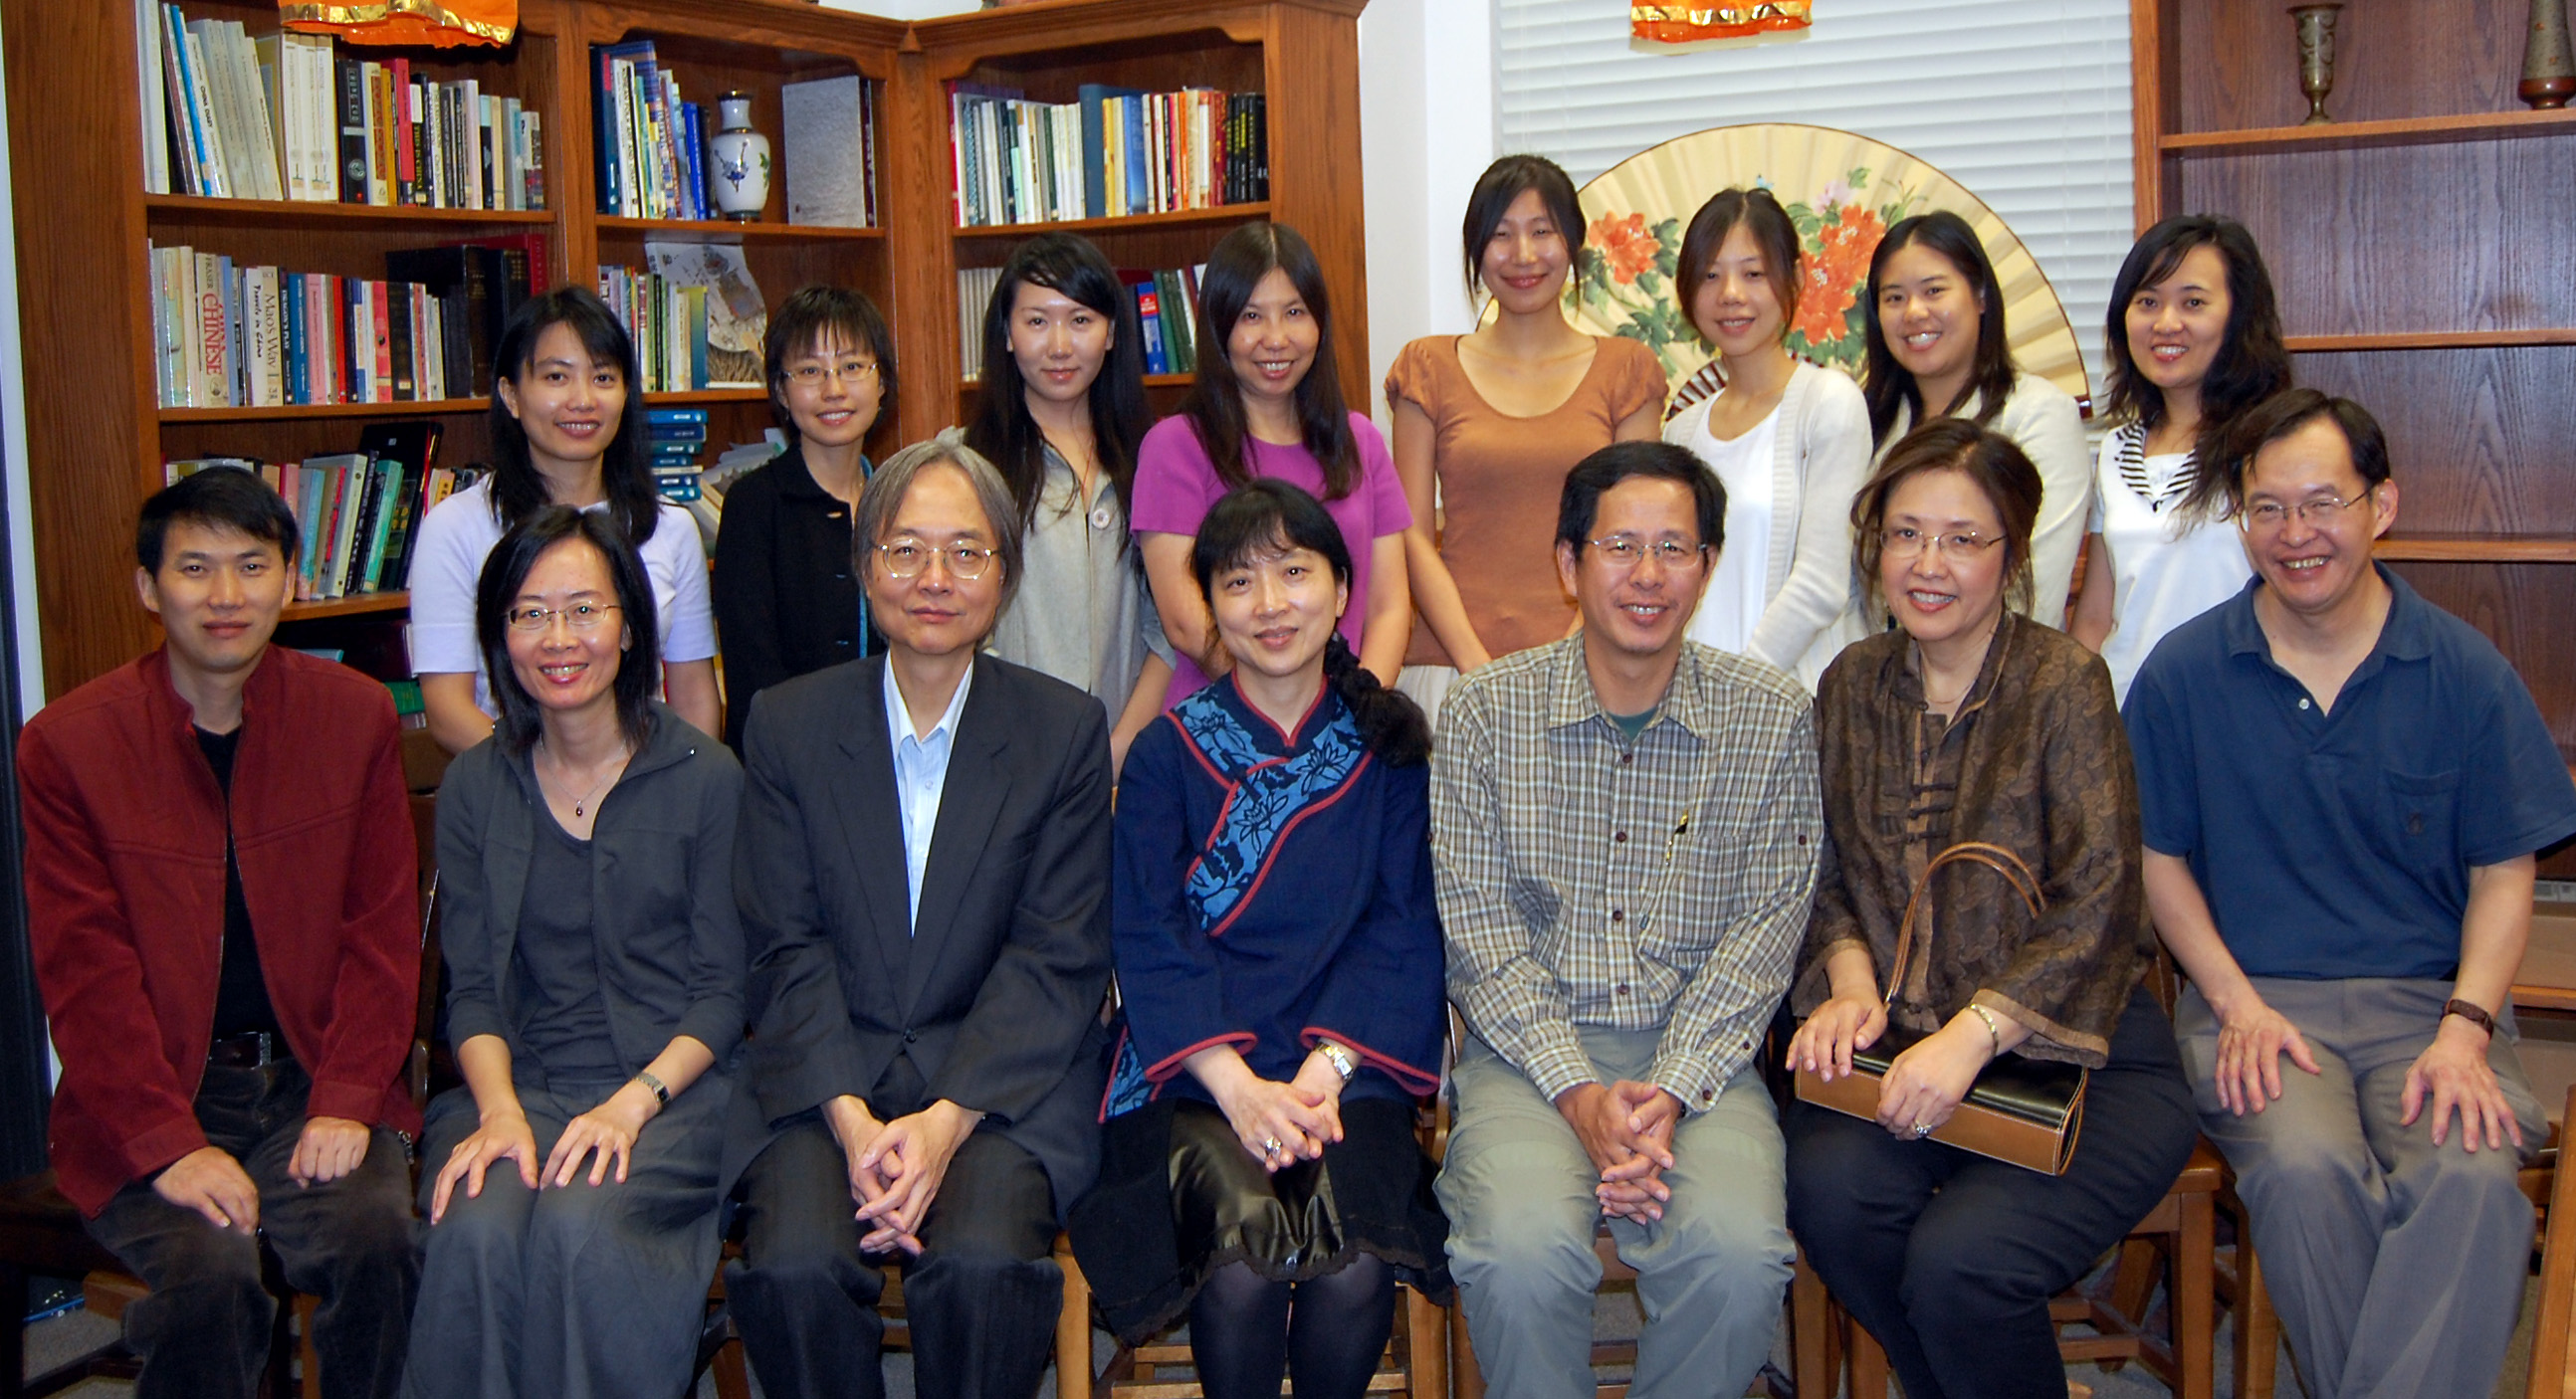 Taken after the seminars given by writers Chu T'ien-wen and Liu Ke-hsiang on November 9, 2009, with UT faculty and graduate students.